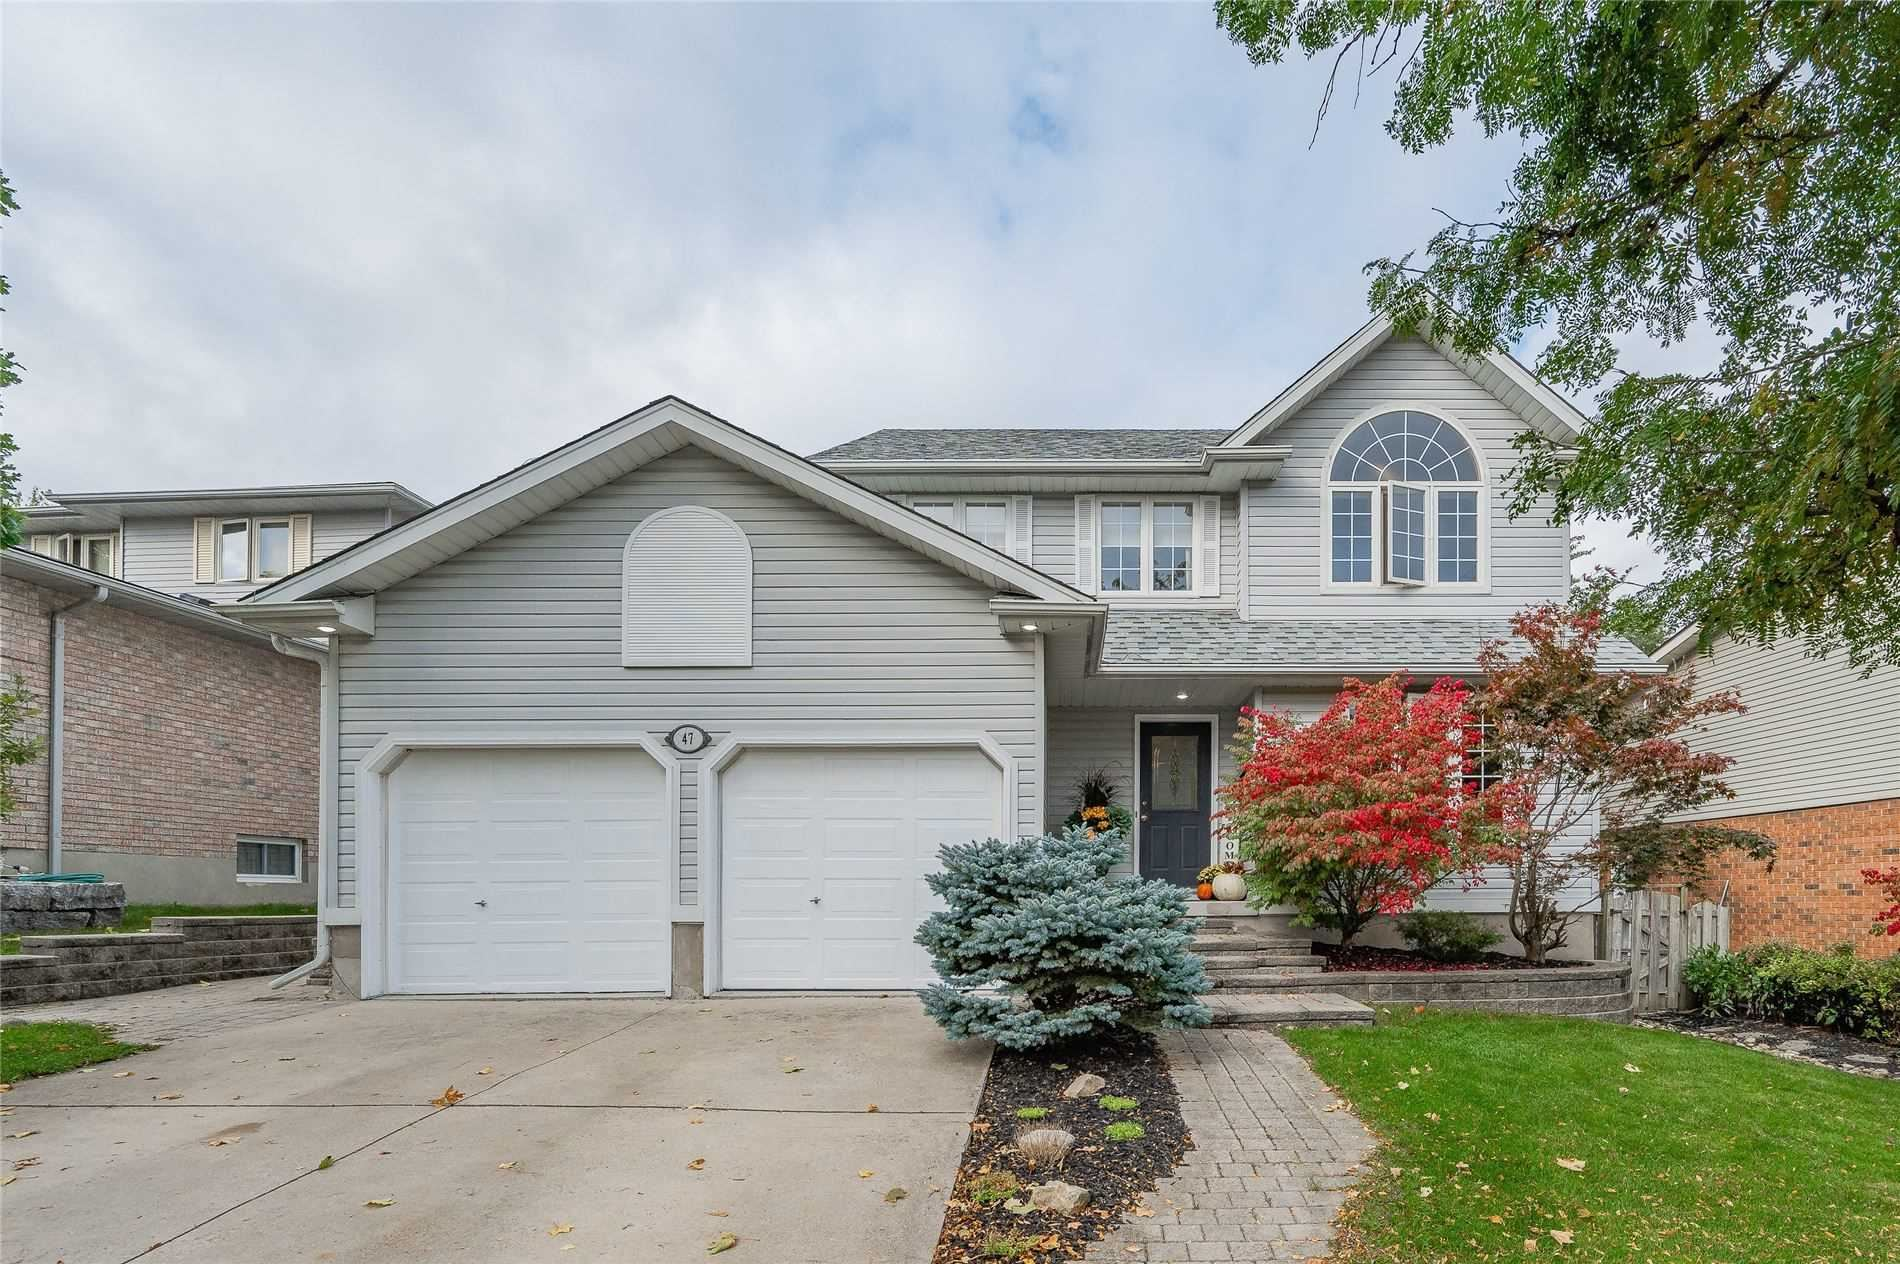 47 Hilldale Cres, Guelph, ON N1G 4B7 - MLS#: X5402496